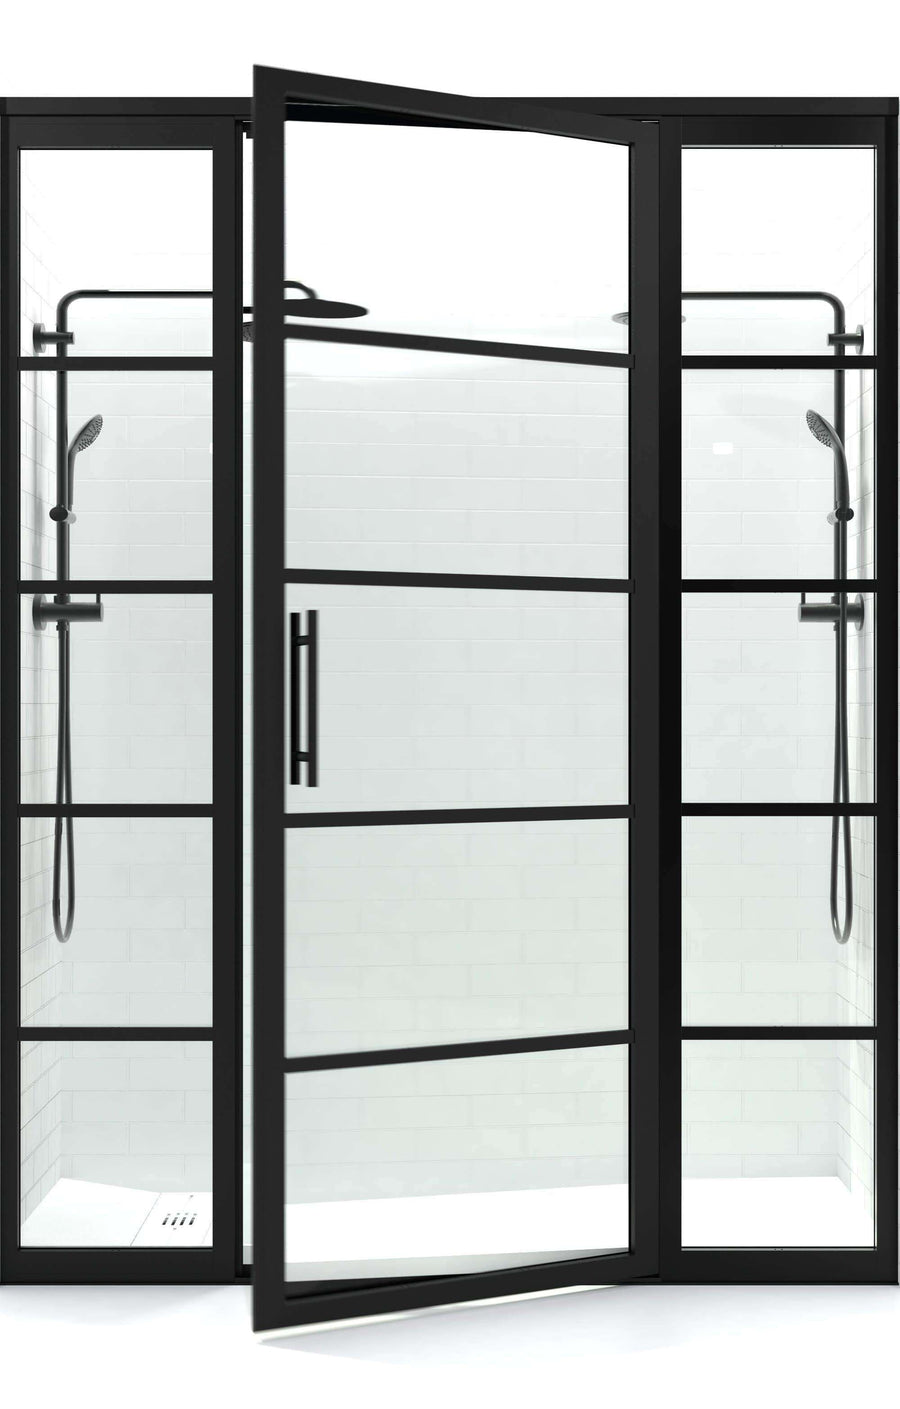 Industrial Balck Grid Style Shower Door | Gridscape Series GS2 with Clear Glass | Door with 2 Inline Panels